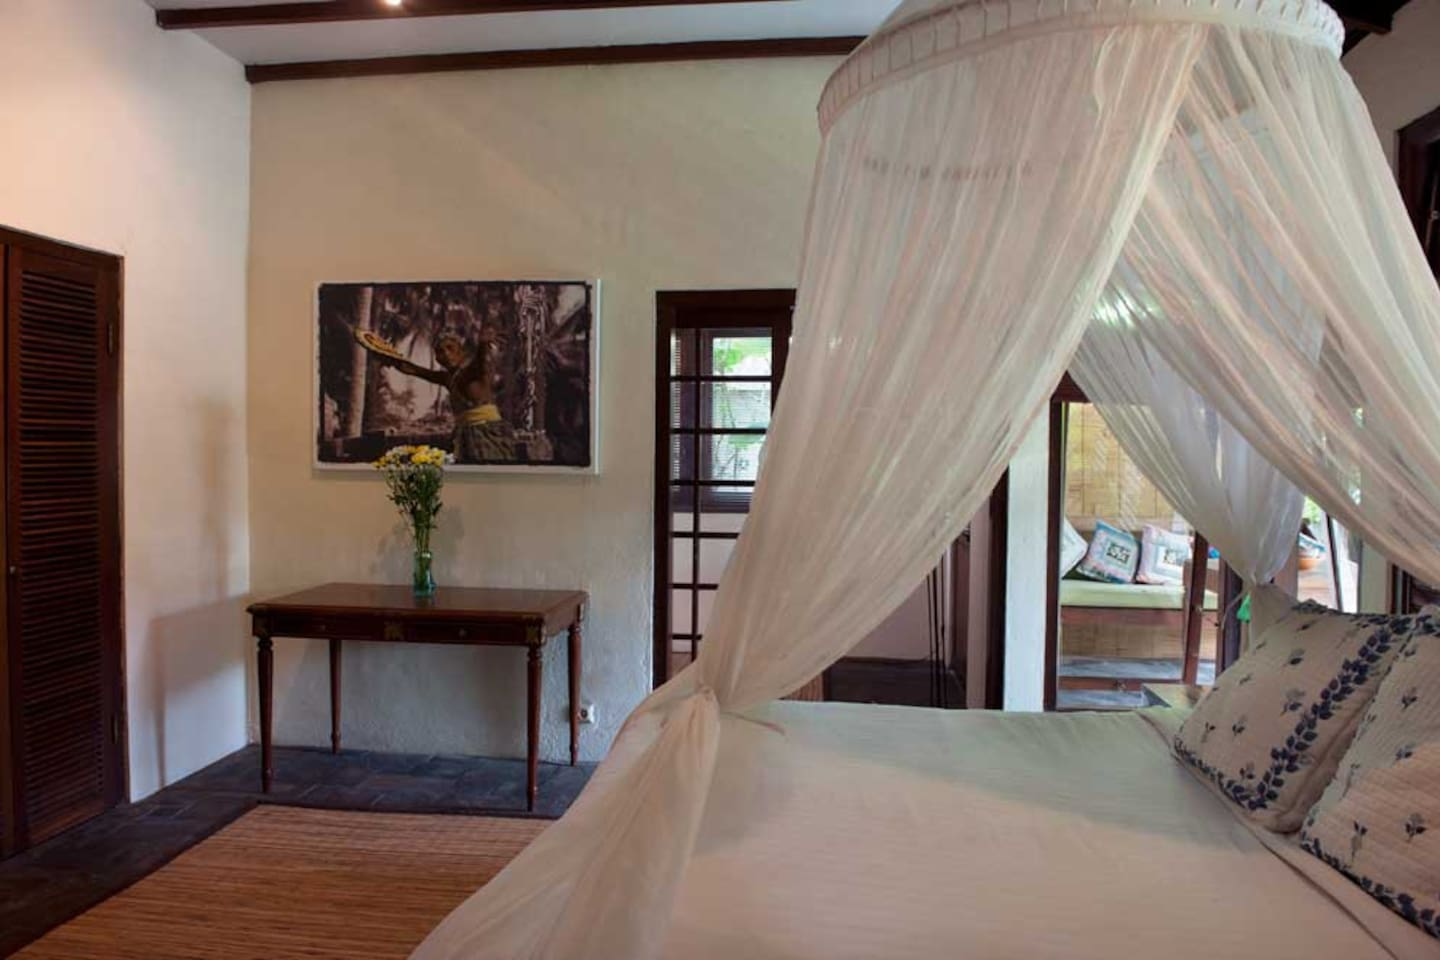 The double room is the master bedroom of this compound. It opens on to an extensive verandah and the plunge pool deck.